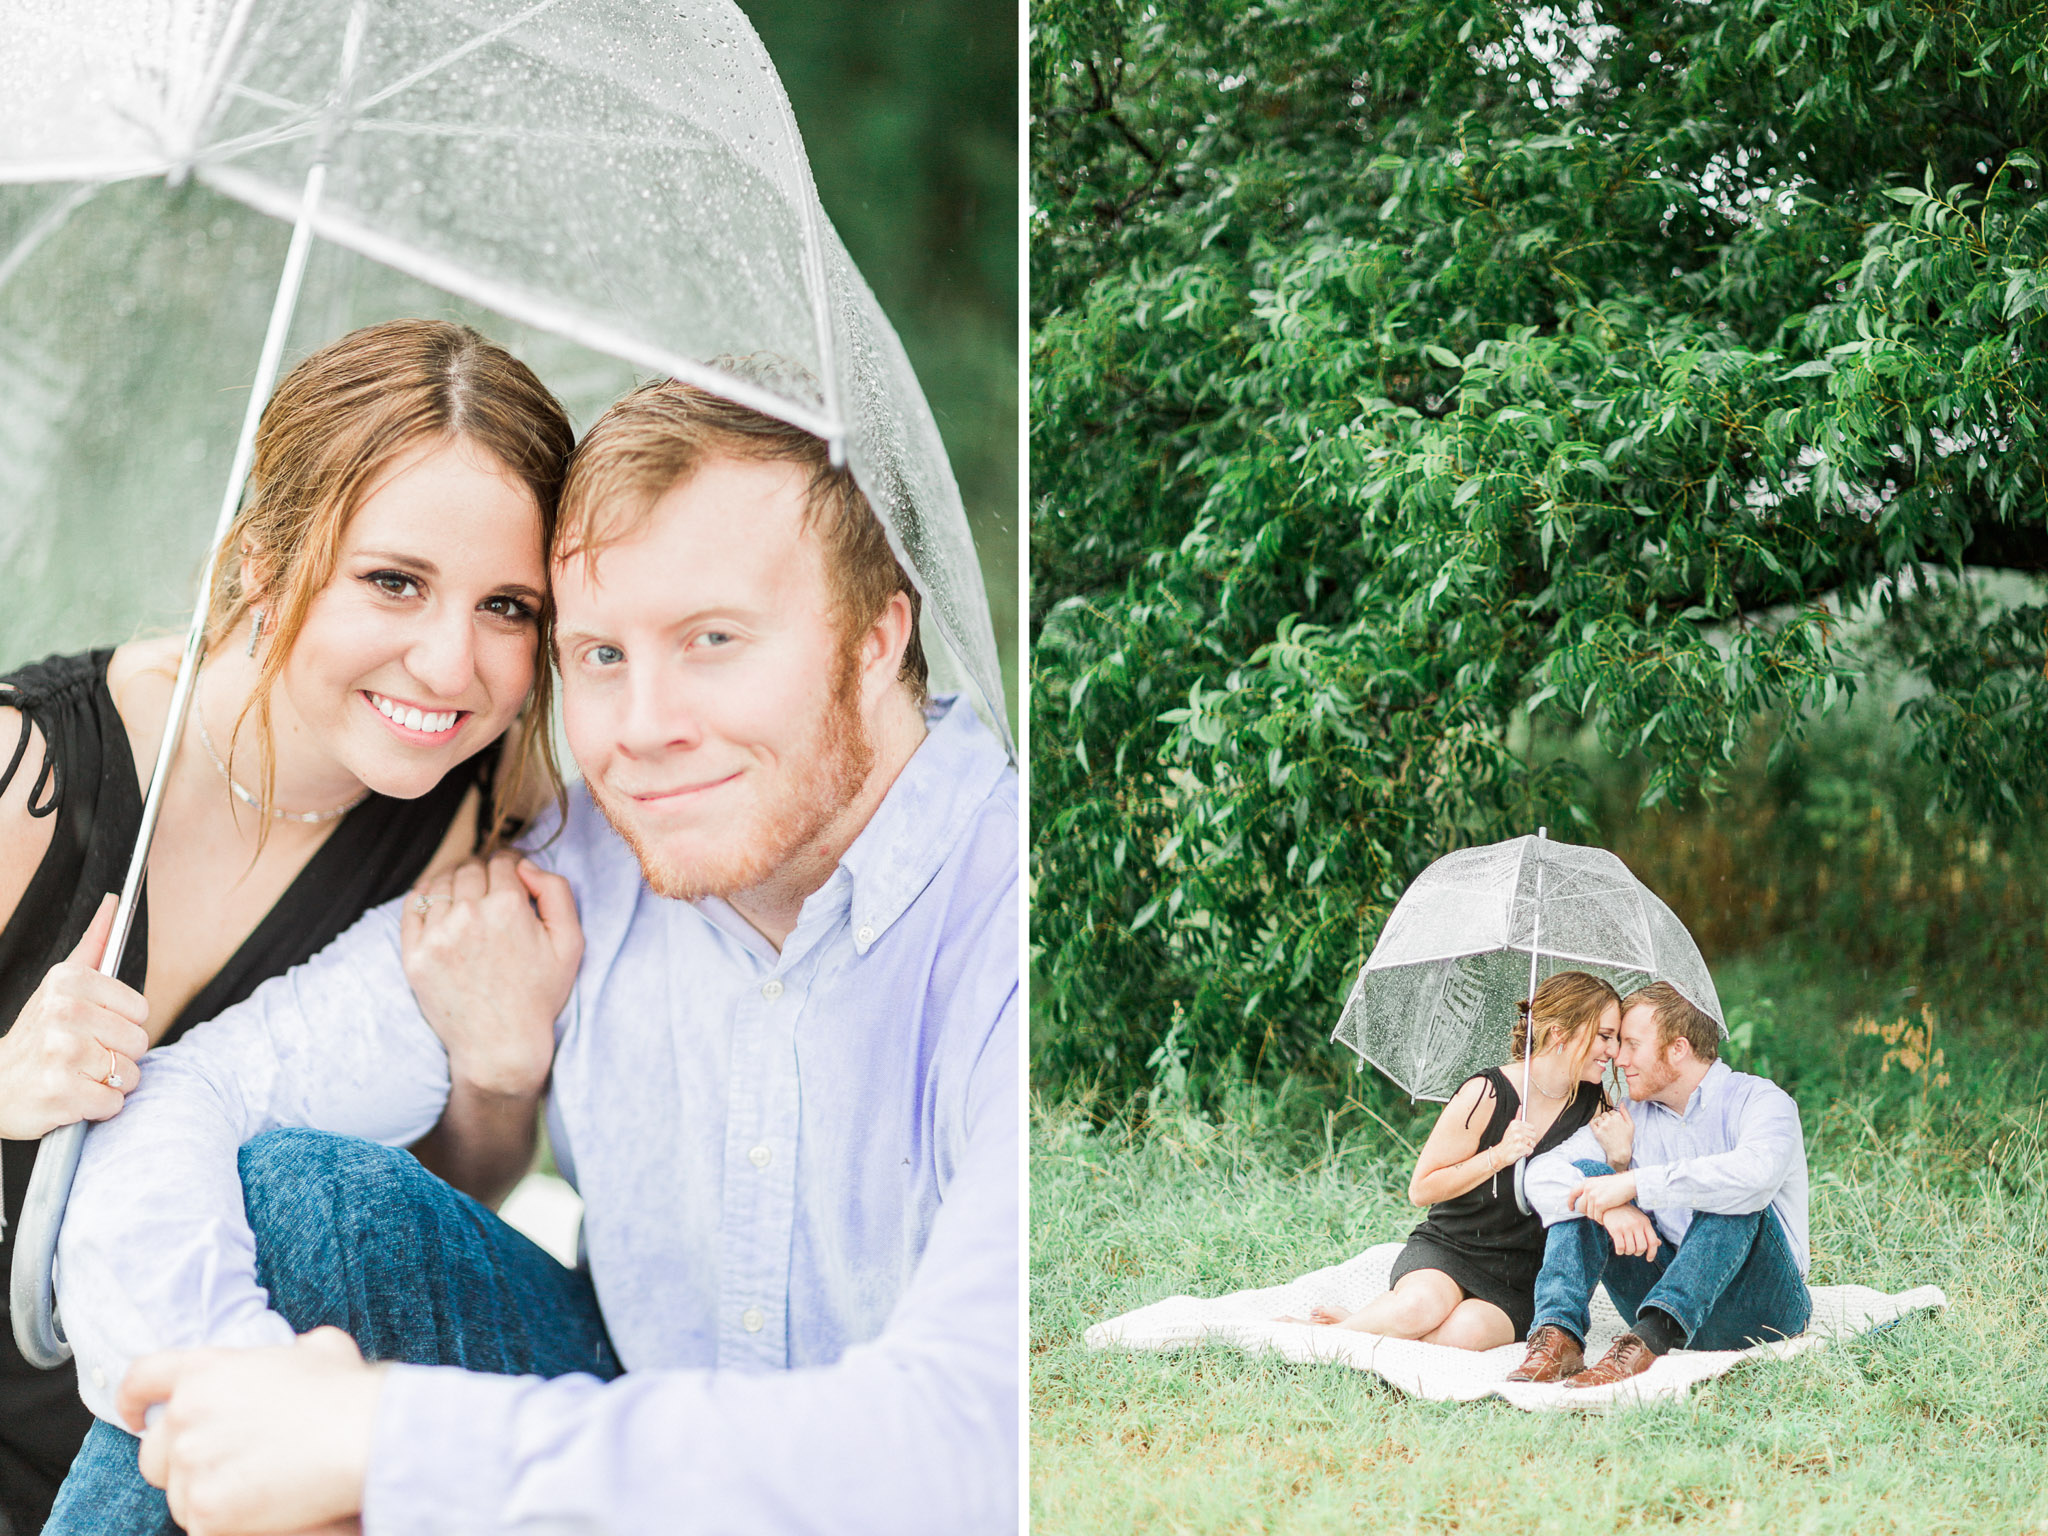 North Texas Engagement Photos - Timeless Photography